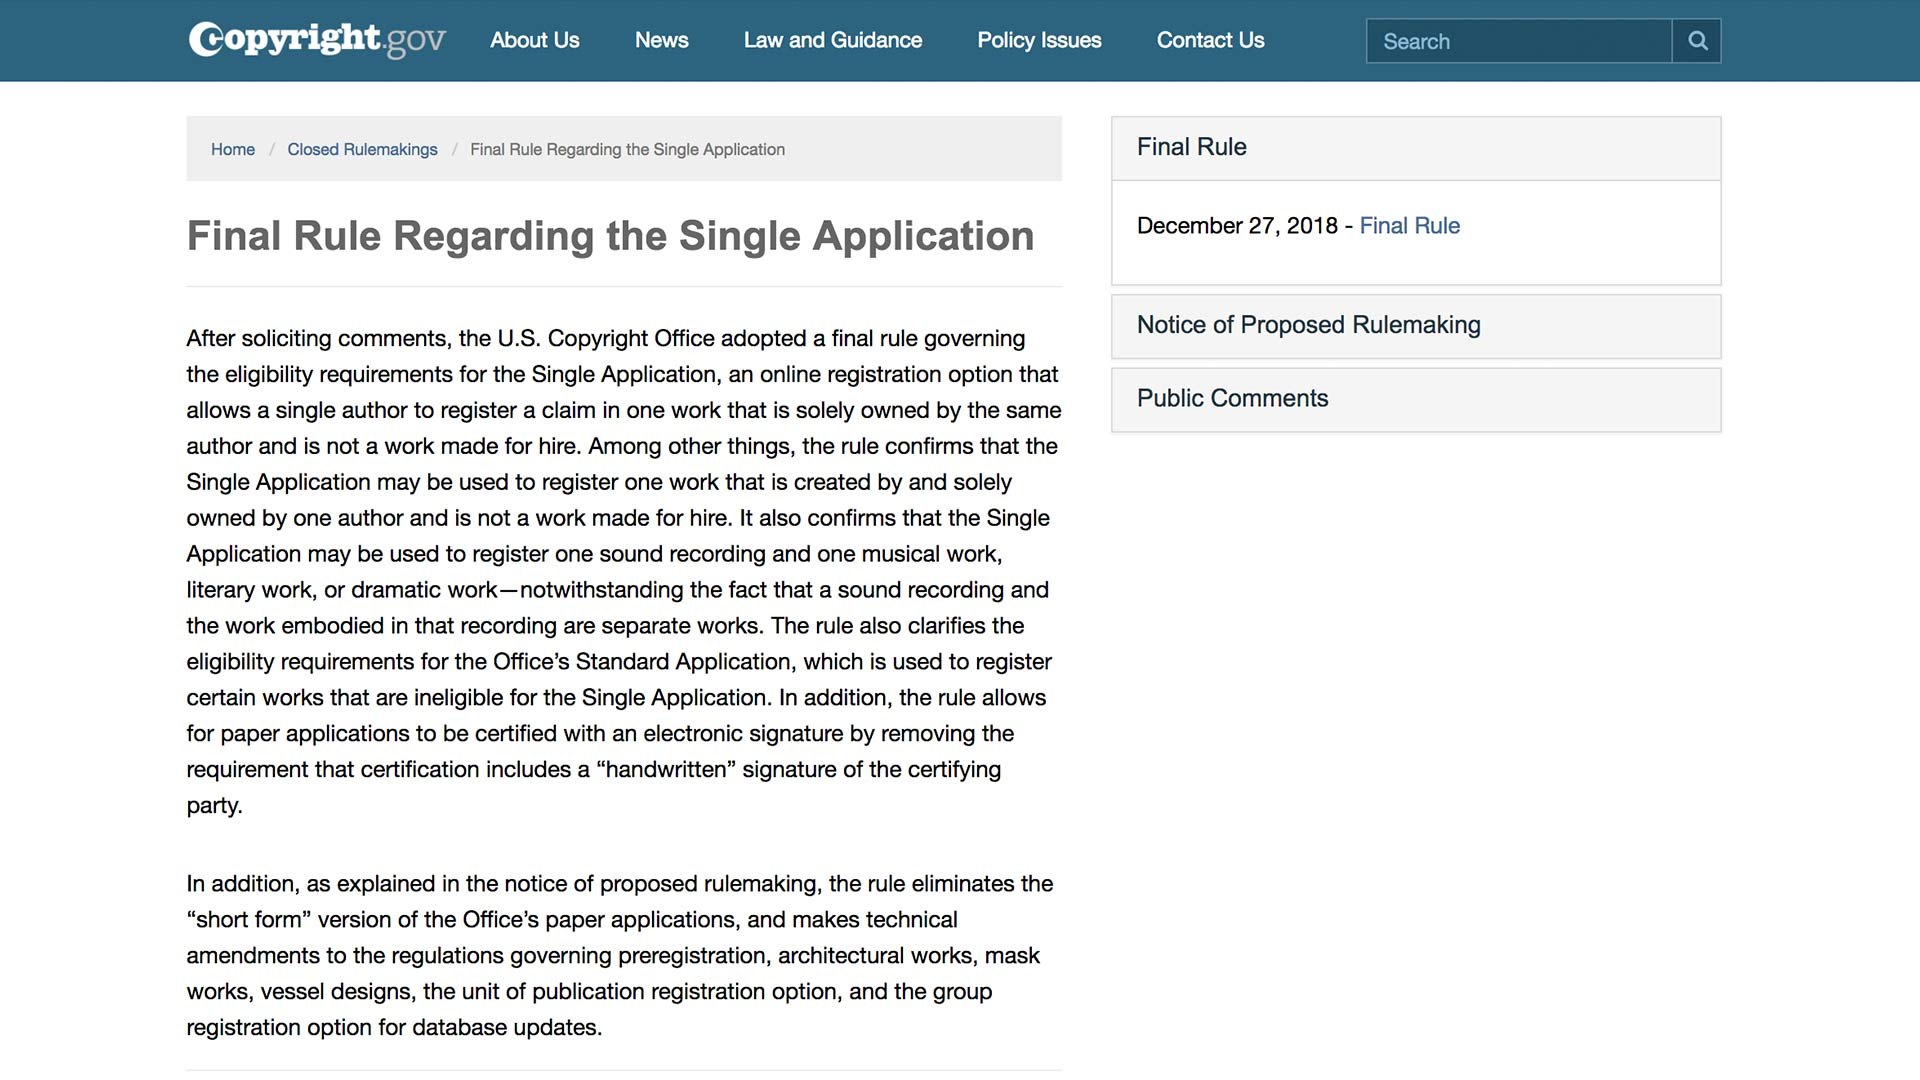 Fairness Rocks News Final Rule Regarding the Single Application